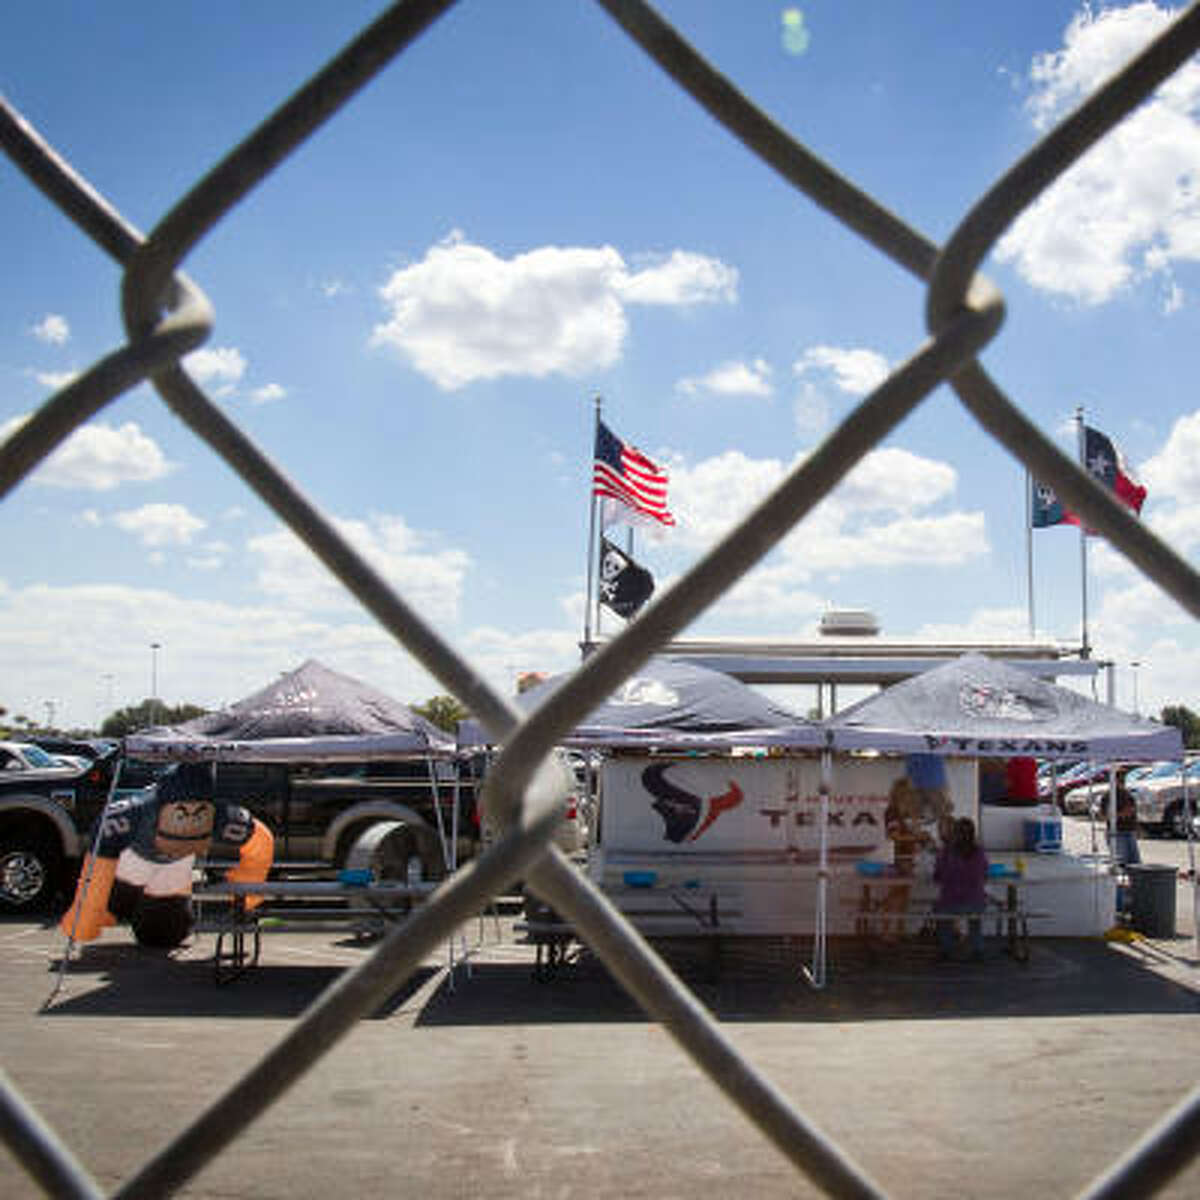 Shortly after 1 p.m., a group of tailgaters dwindled to just a few people in the green lot Sunday.